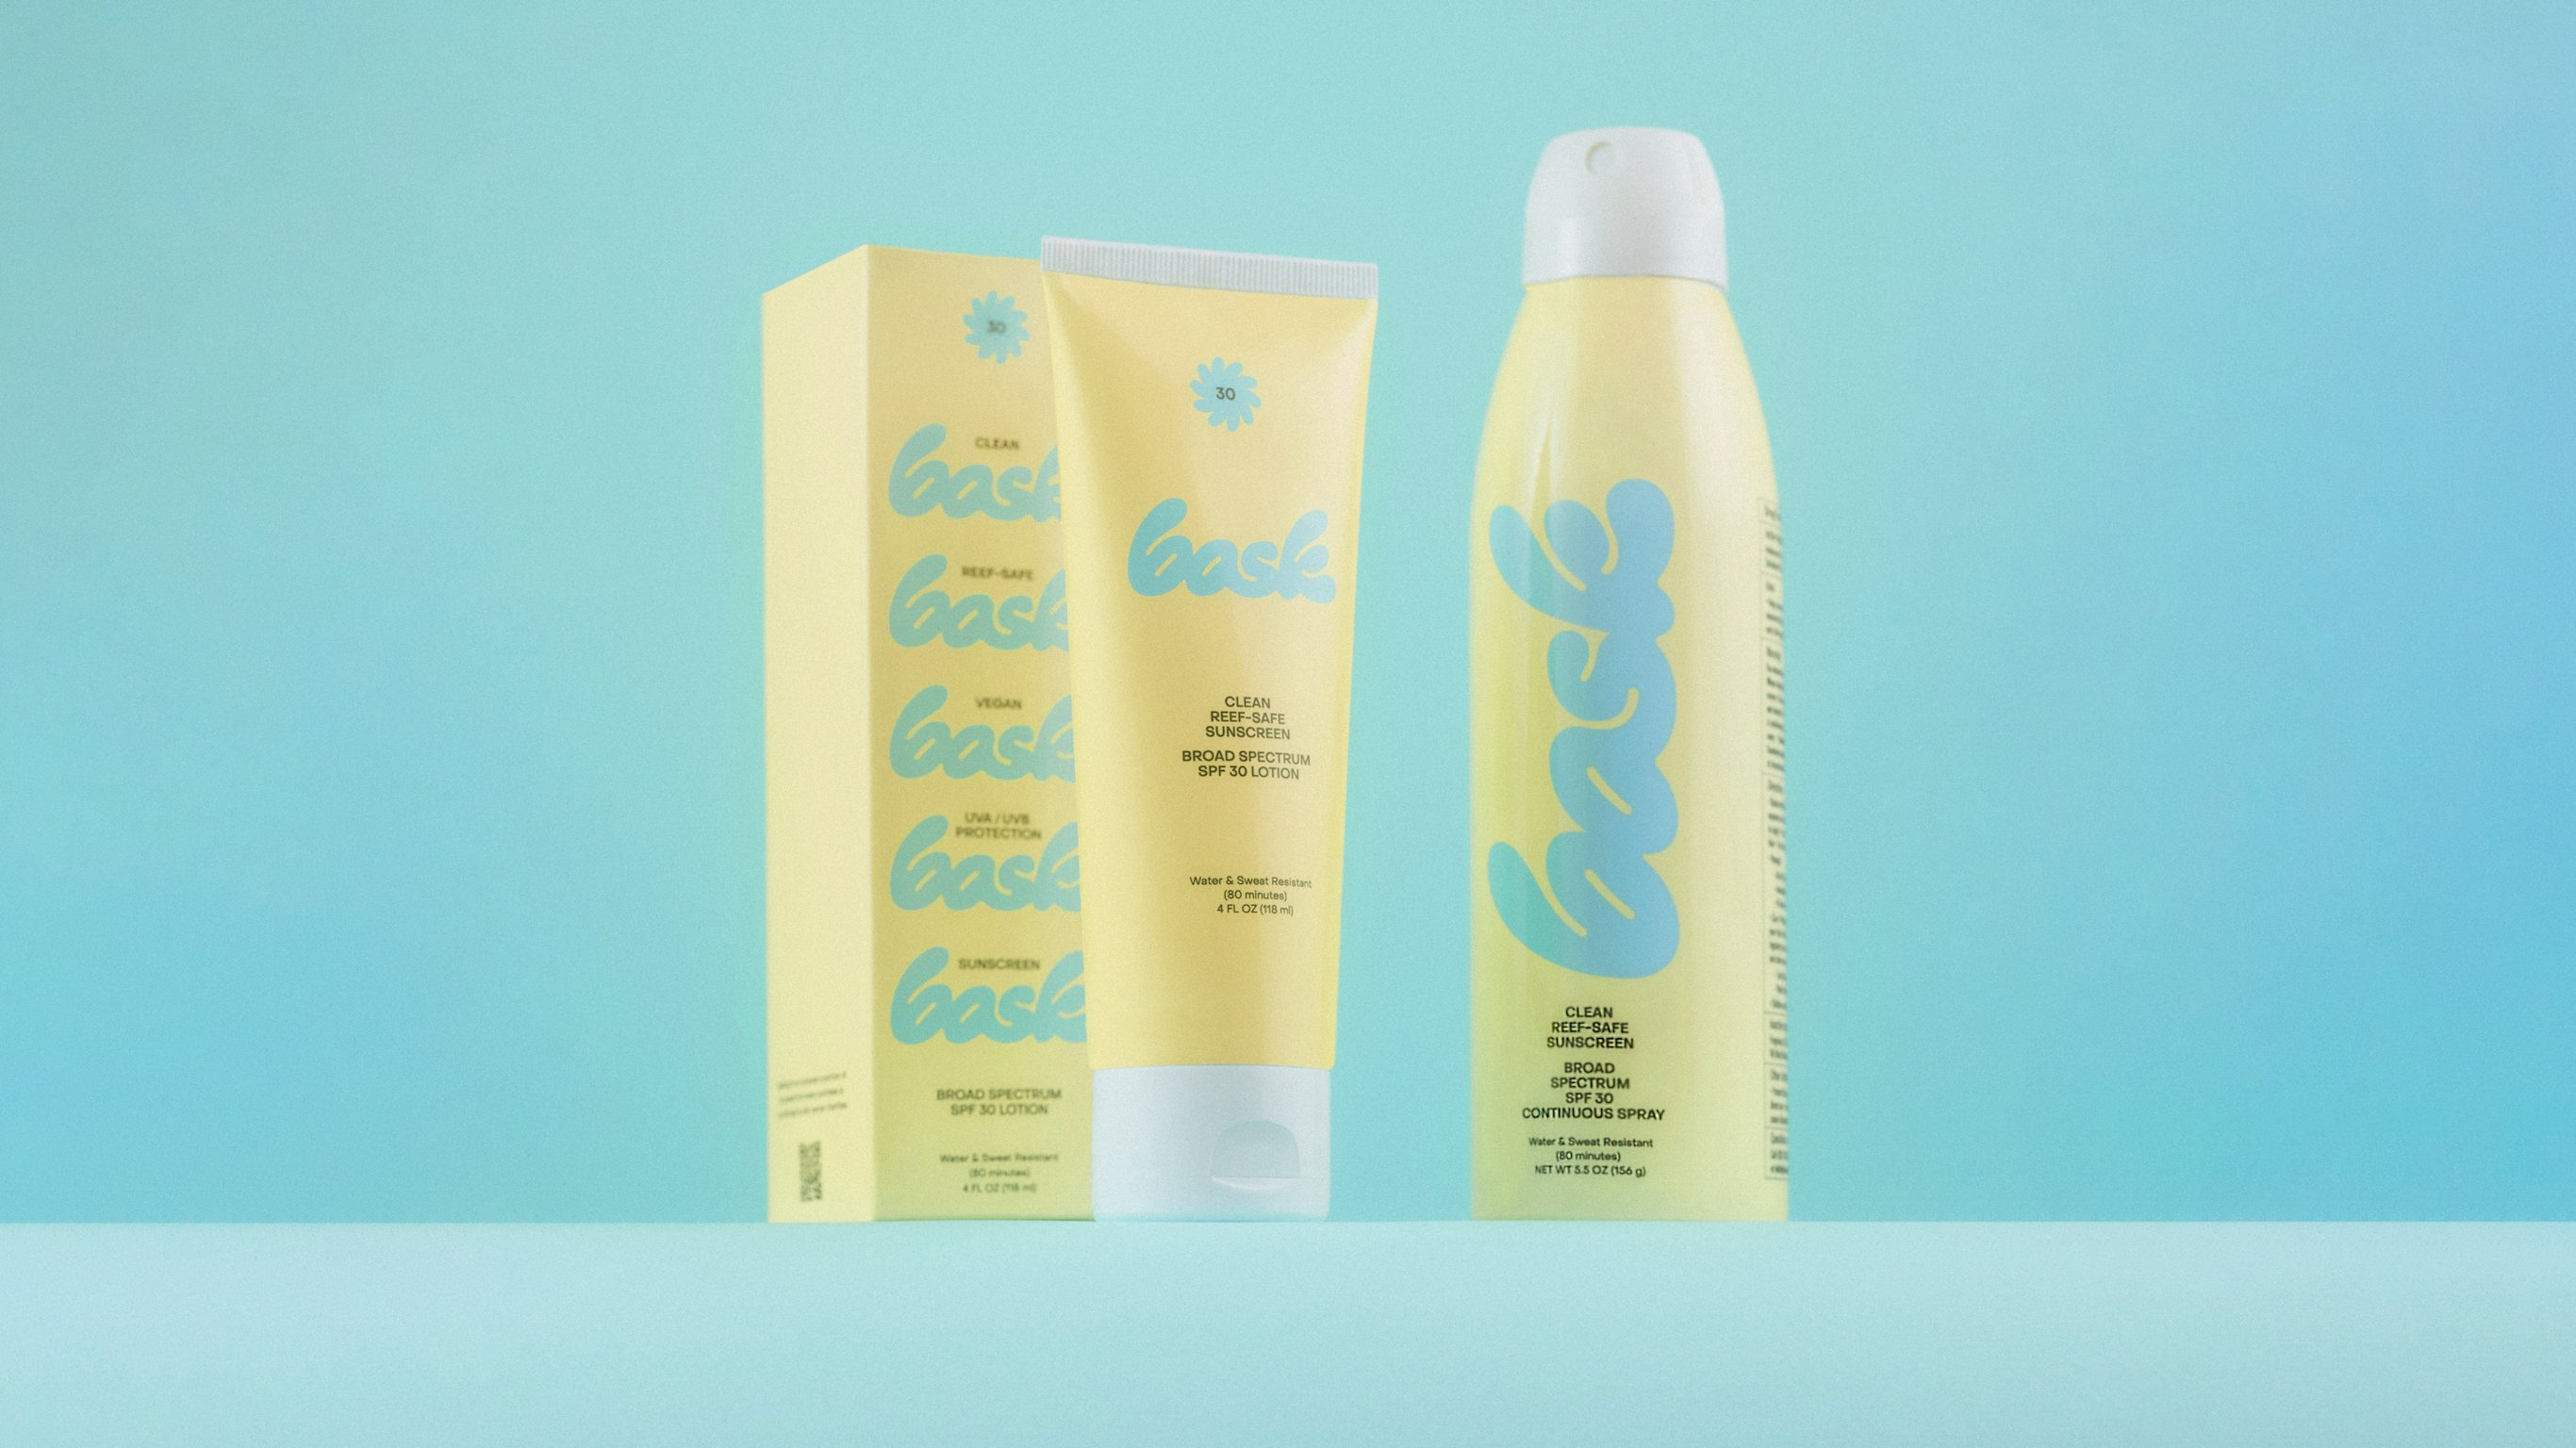 Bask Sunscreen Yellow Spray Bottle and Lotion Tube on Blue Background by RoAndCo